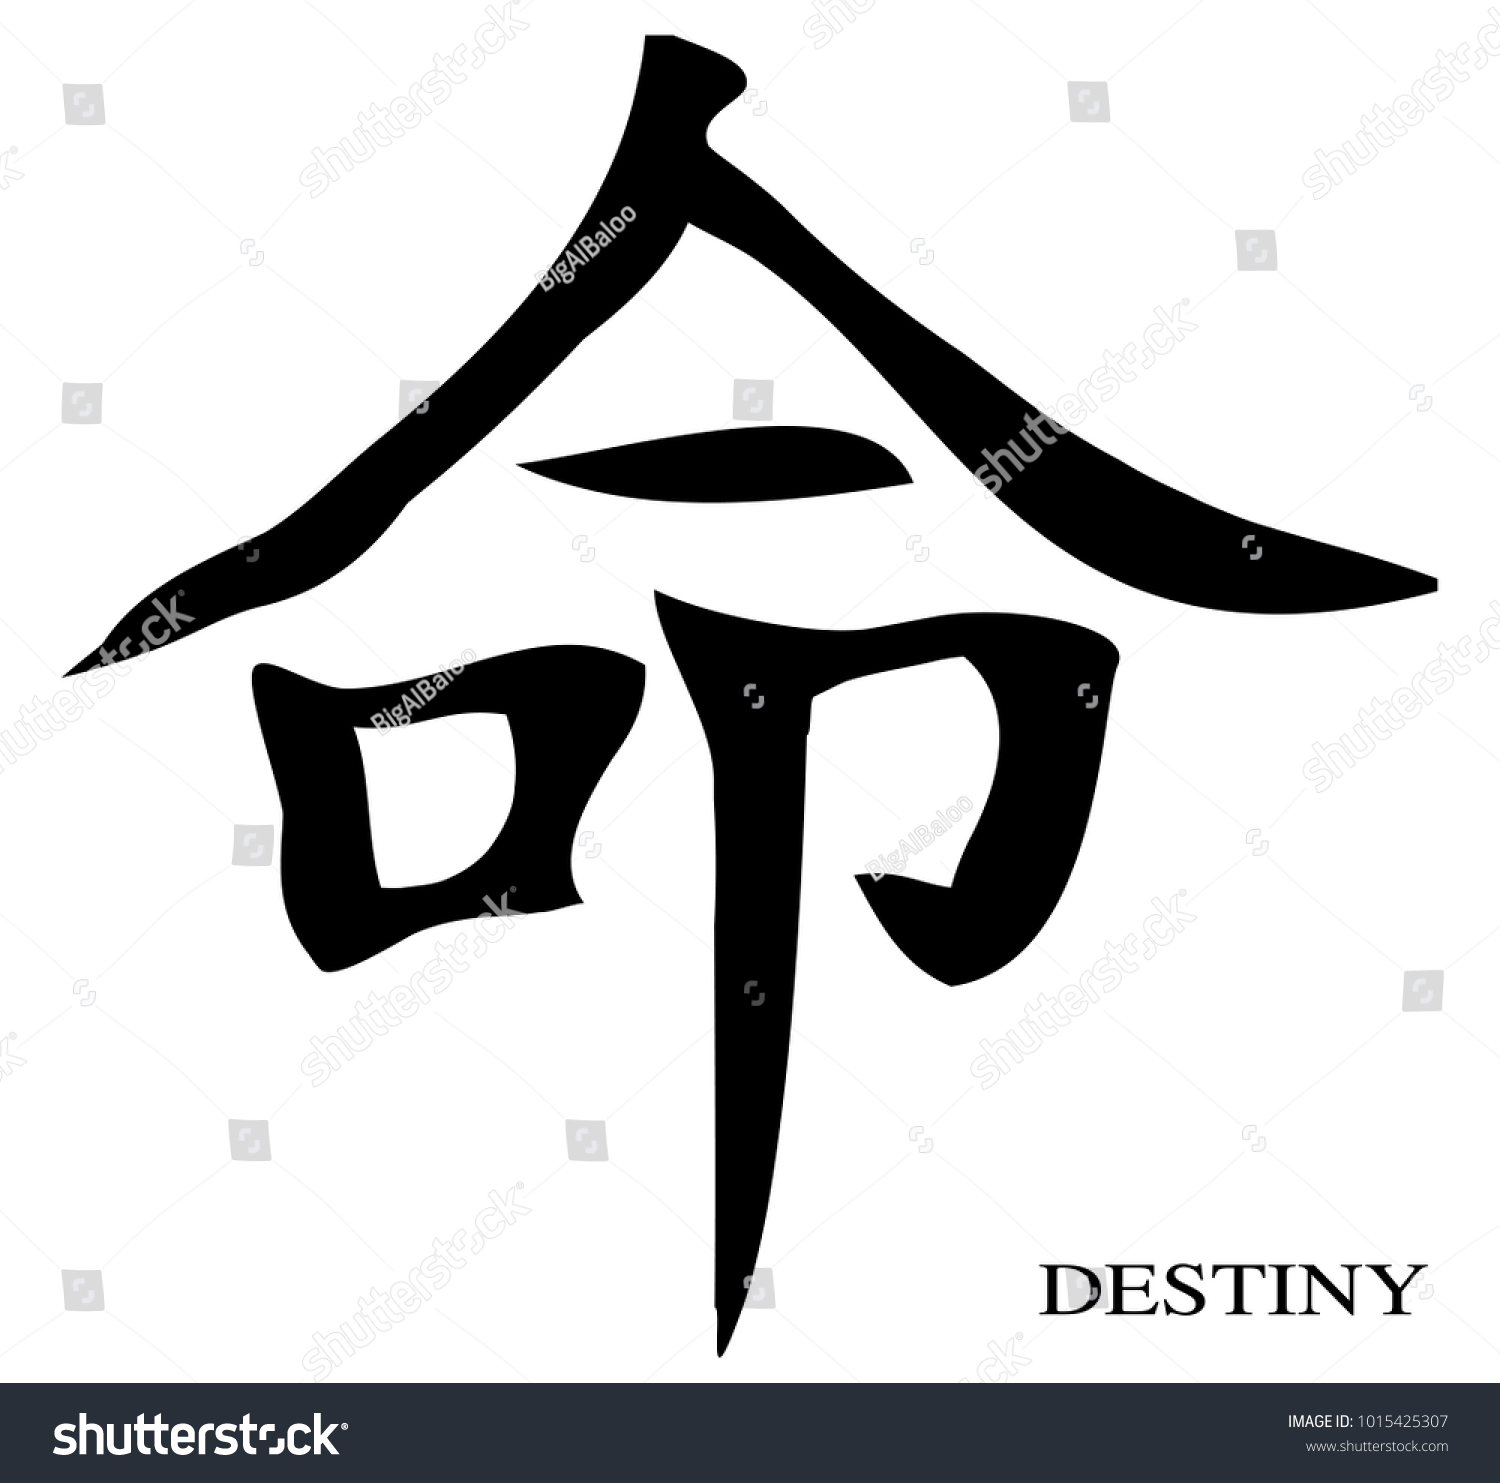 Chinese character destiny over white background stock illustration the chinese character for destiny over a white background buycottarizona